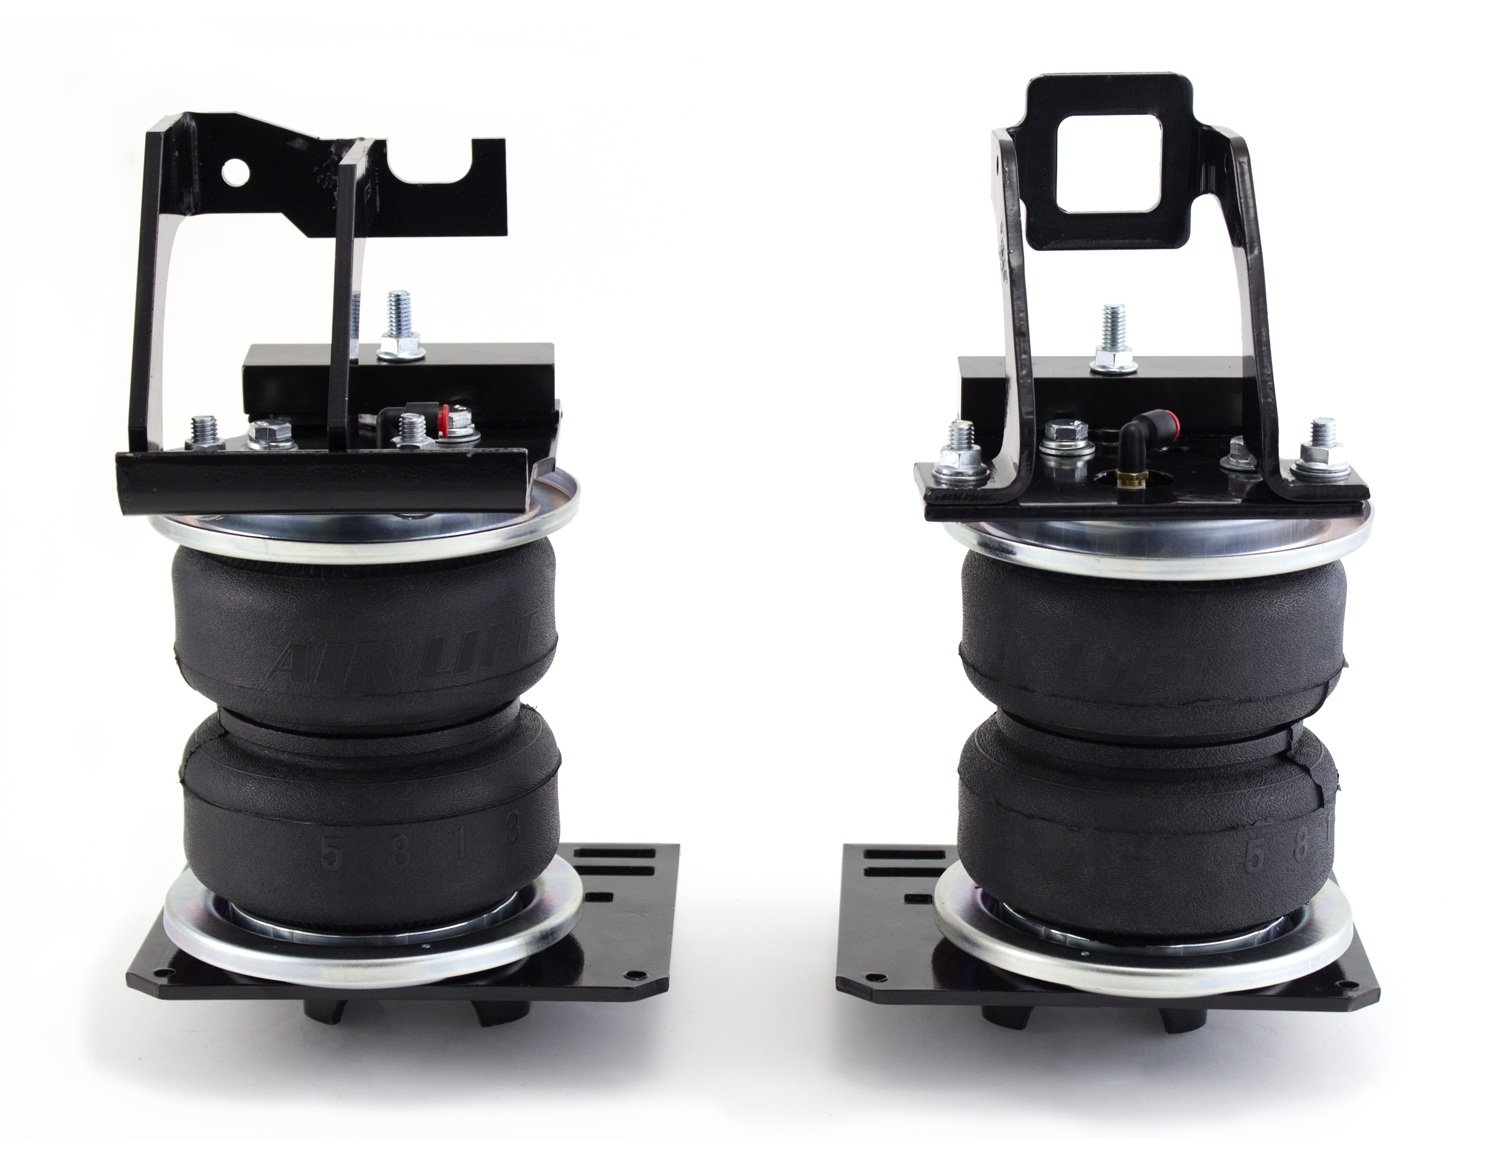 Air Lift 57396 Load Lifter 5000 Rear Air Bags Kit for 2011 Ford F250 / F350 / F450 4WD by Air Lift (Image #5)